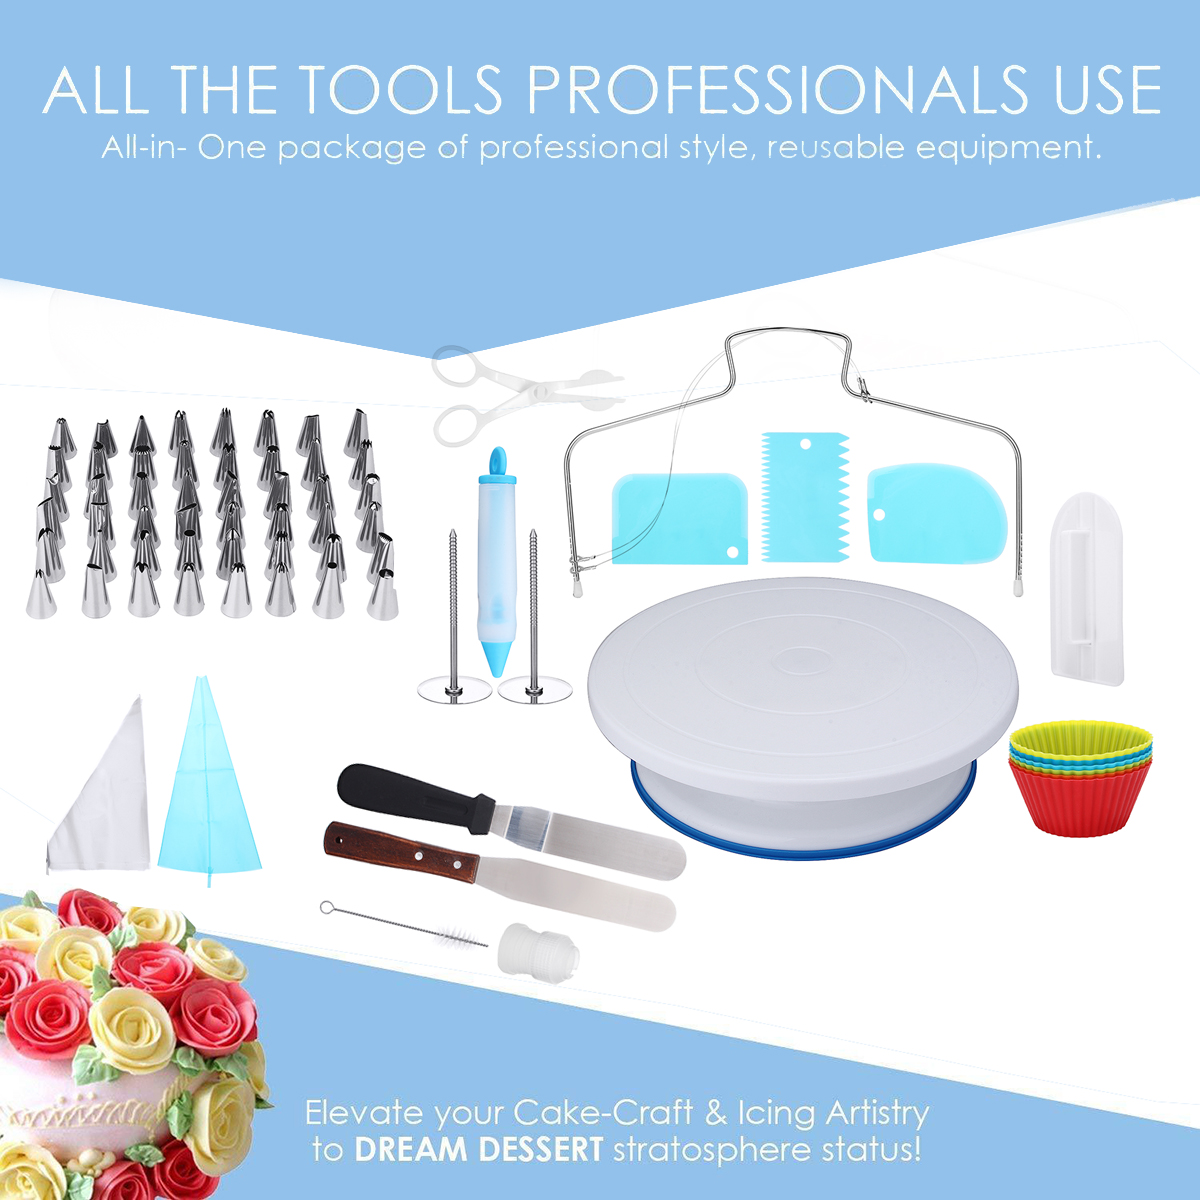 73Pcs Rotating Turntable Cake Decorating Tools Baking Mold Flower Icing Piping Nozzle